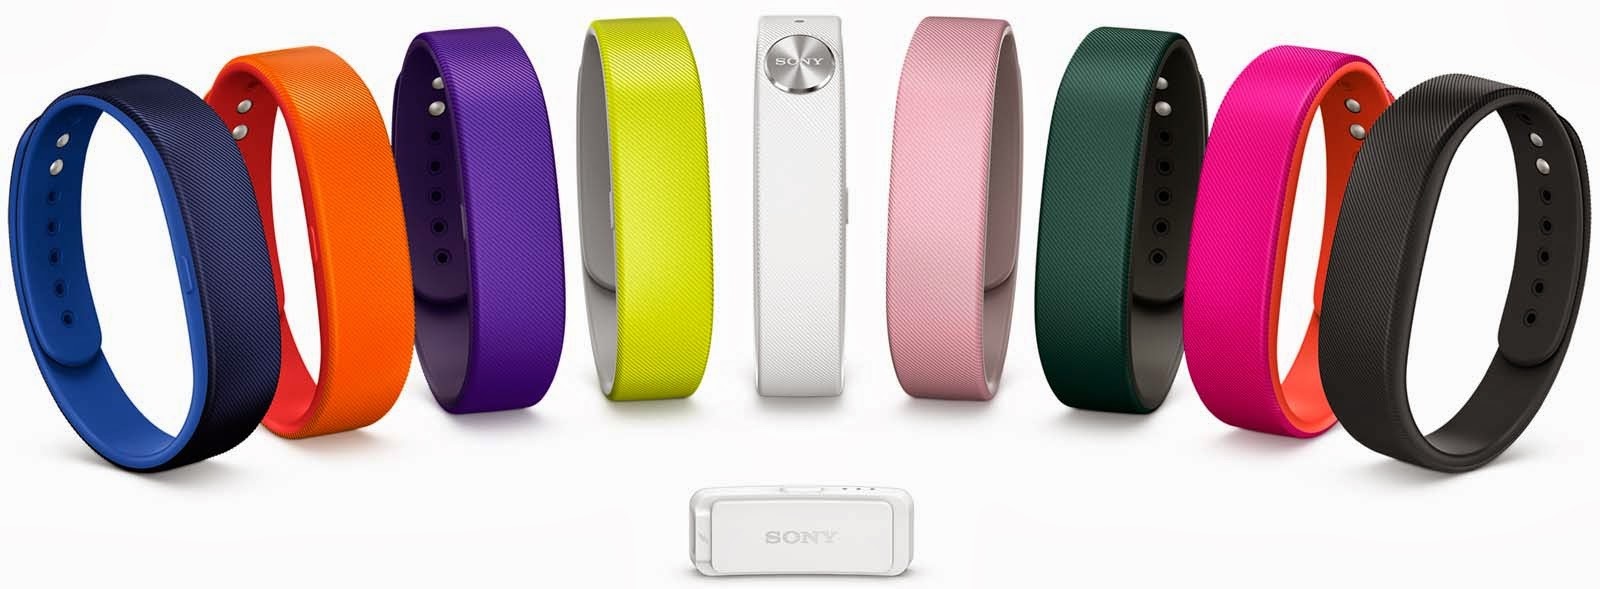 Sony's Core and SmartBand SWR10